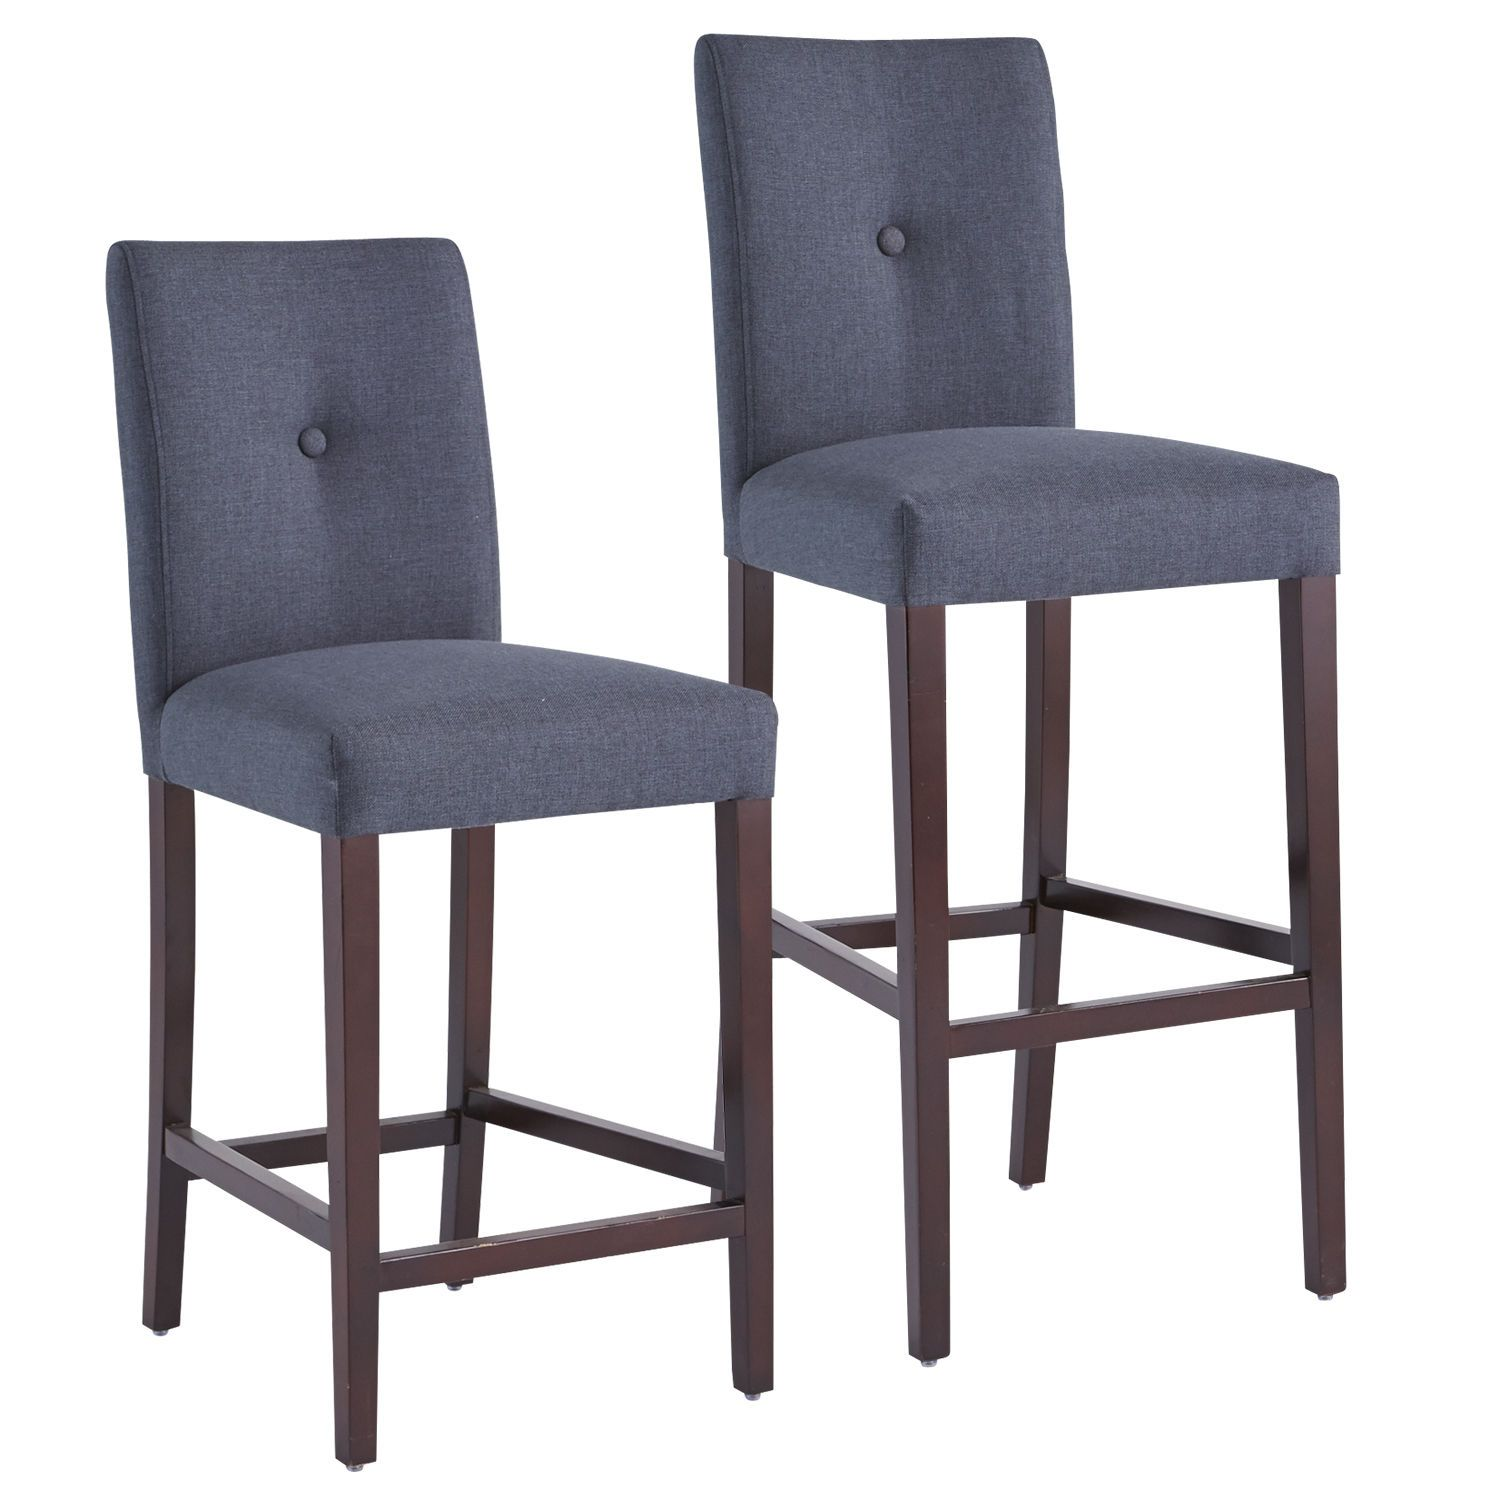 Mason Bar & Counter Stools Navy Pier 1 Imports